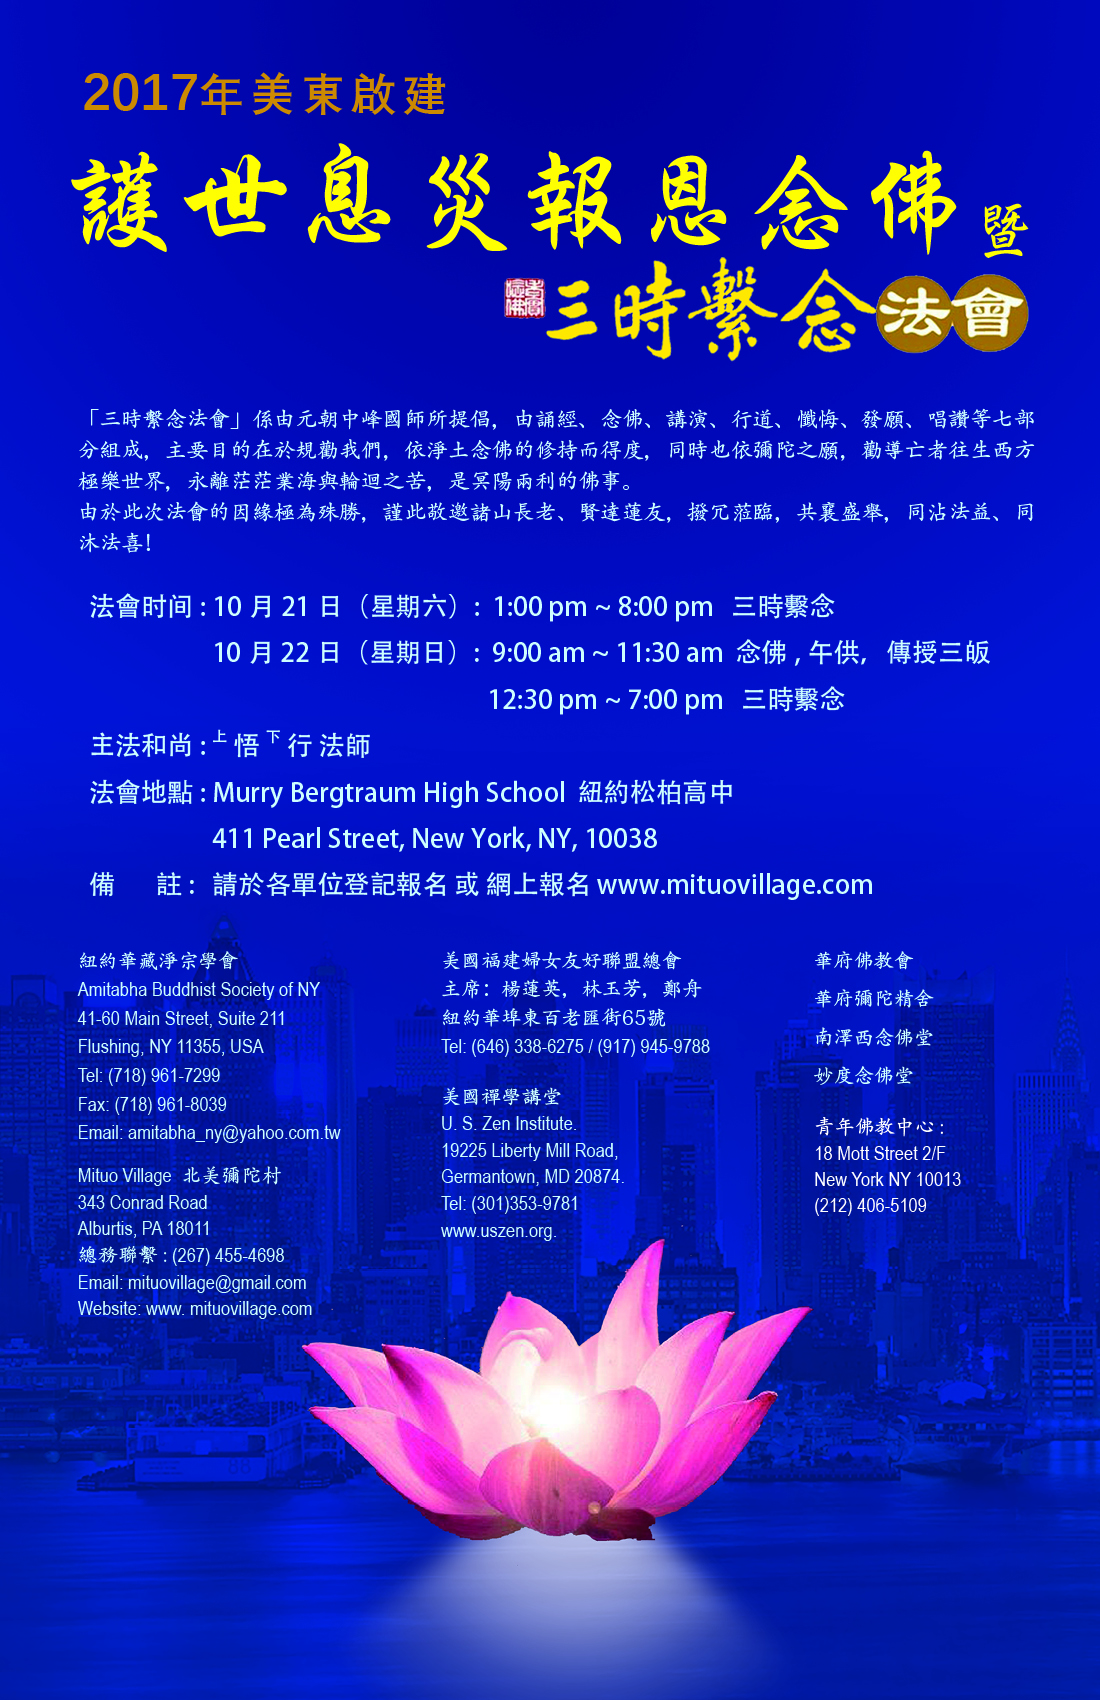 2017 NY Mid-Autumn Festival Thrice Yearning Ceremony and Chanting Cultivation